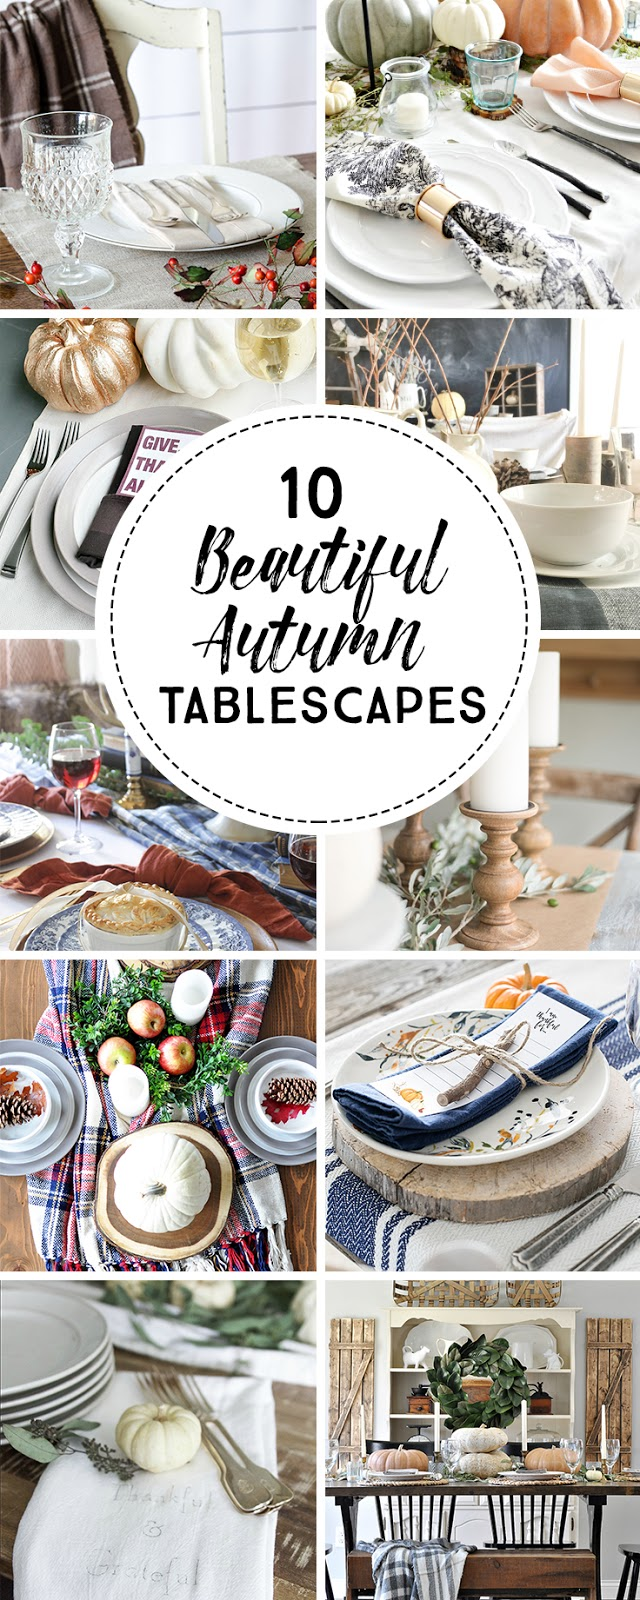 10 Beautiful Autumn Tablescapes